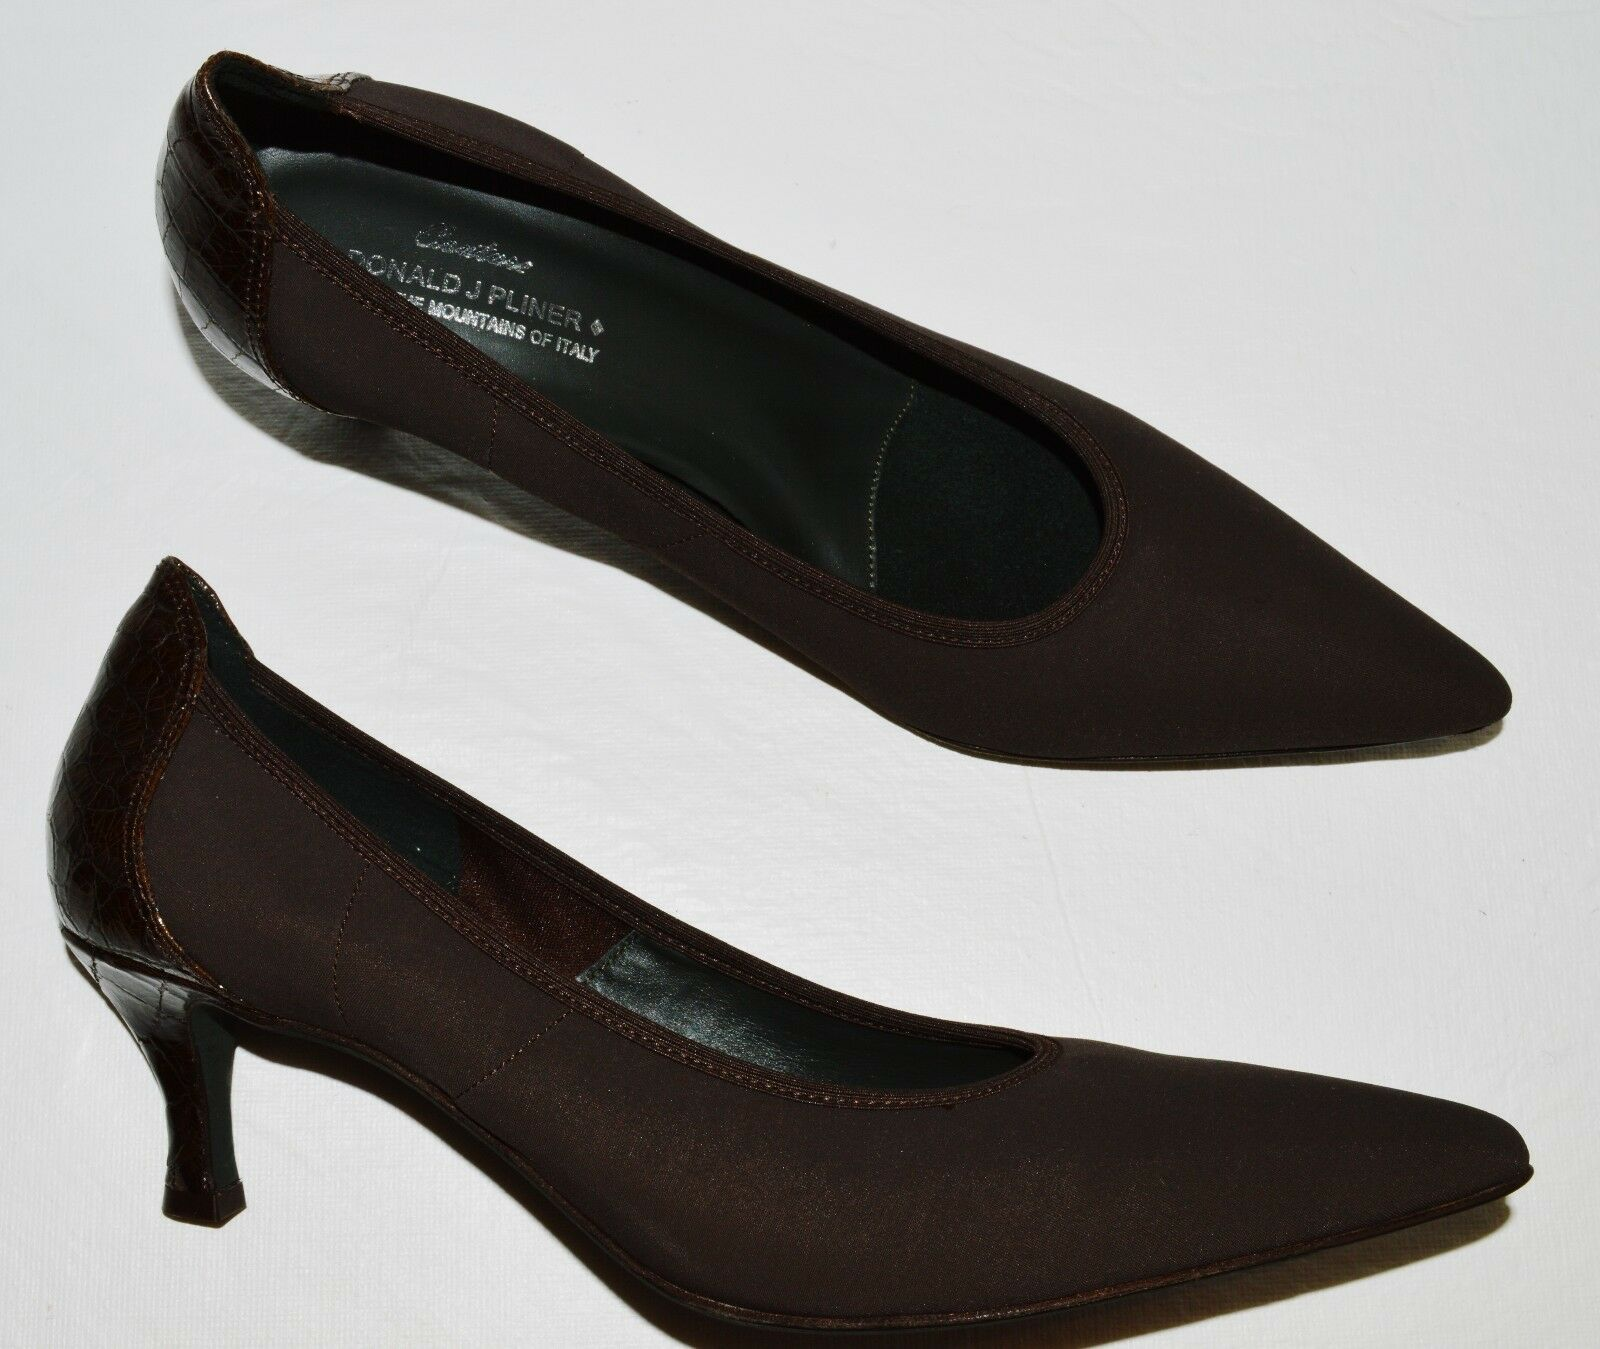 DONALD J J J PLINER COUTURE EMMY NEW 9.5 N BROWN FABRIC PATENT LEATHER PUMPS HEELS 1f57ee